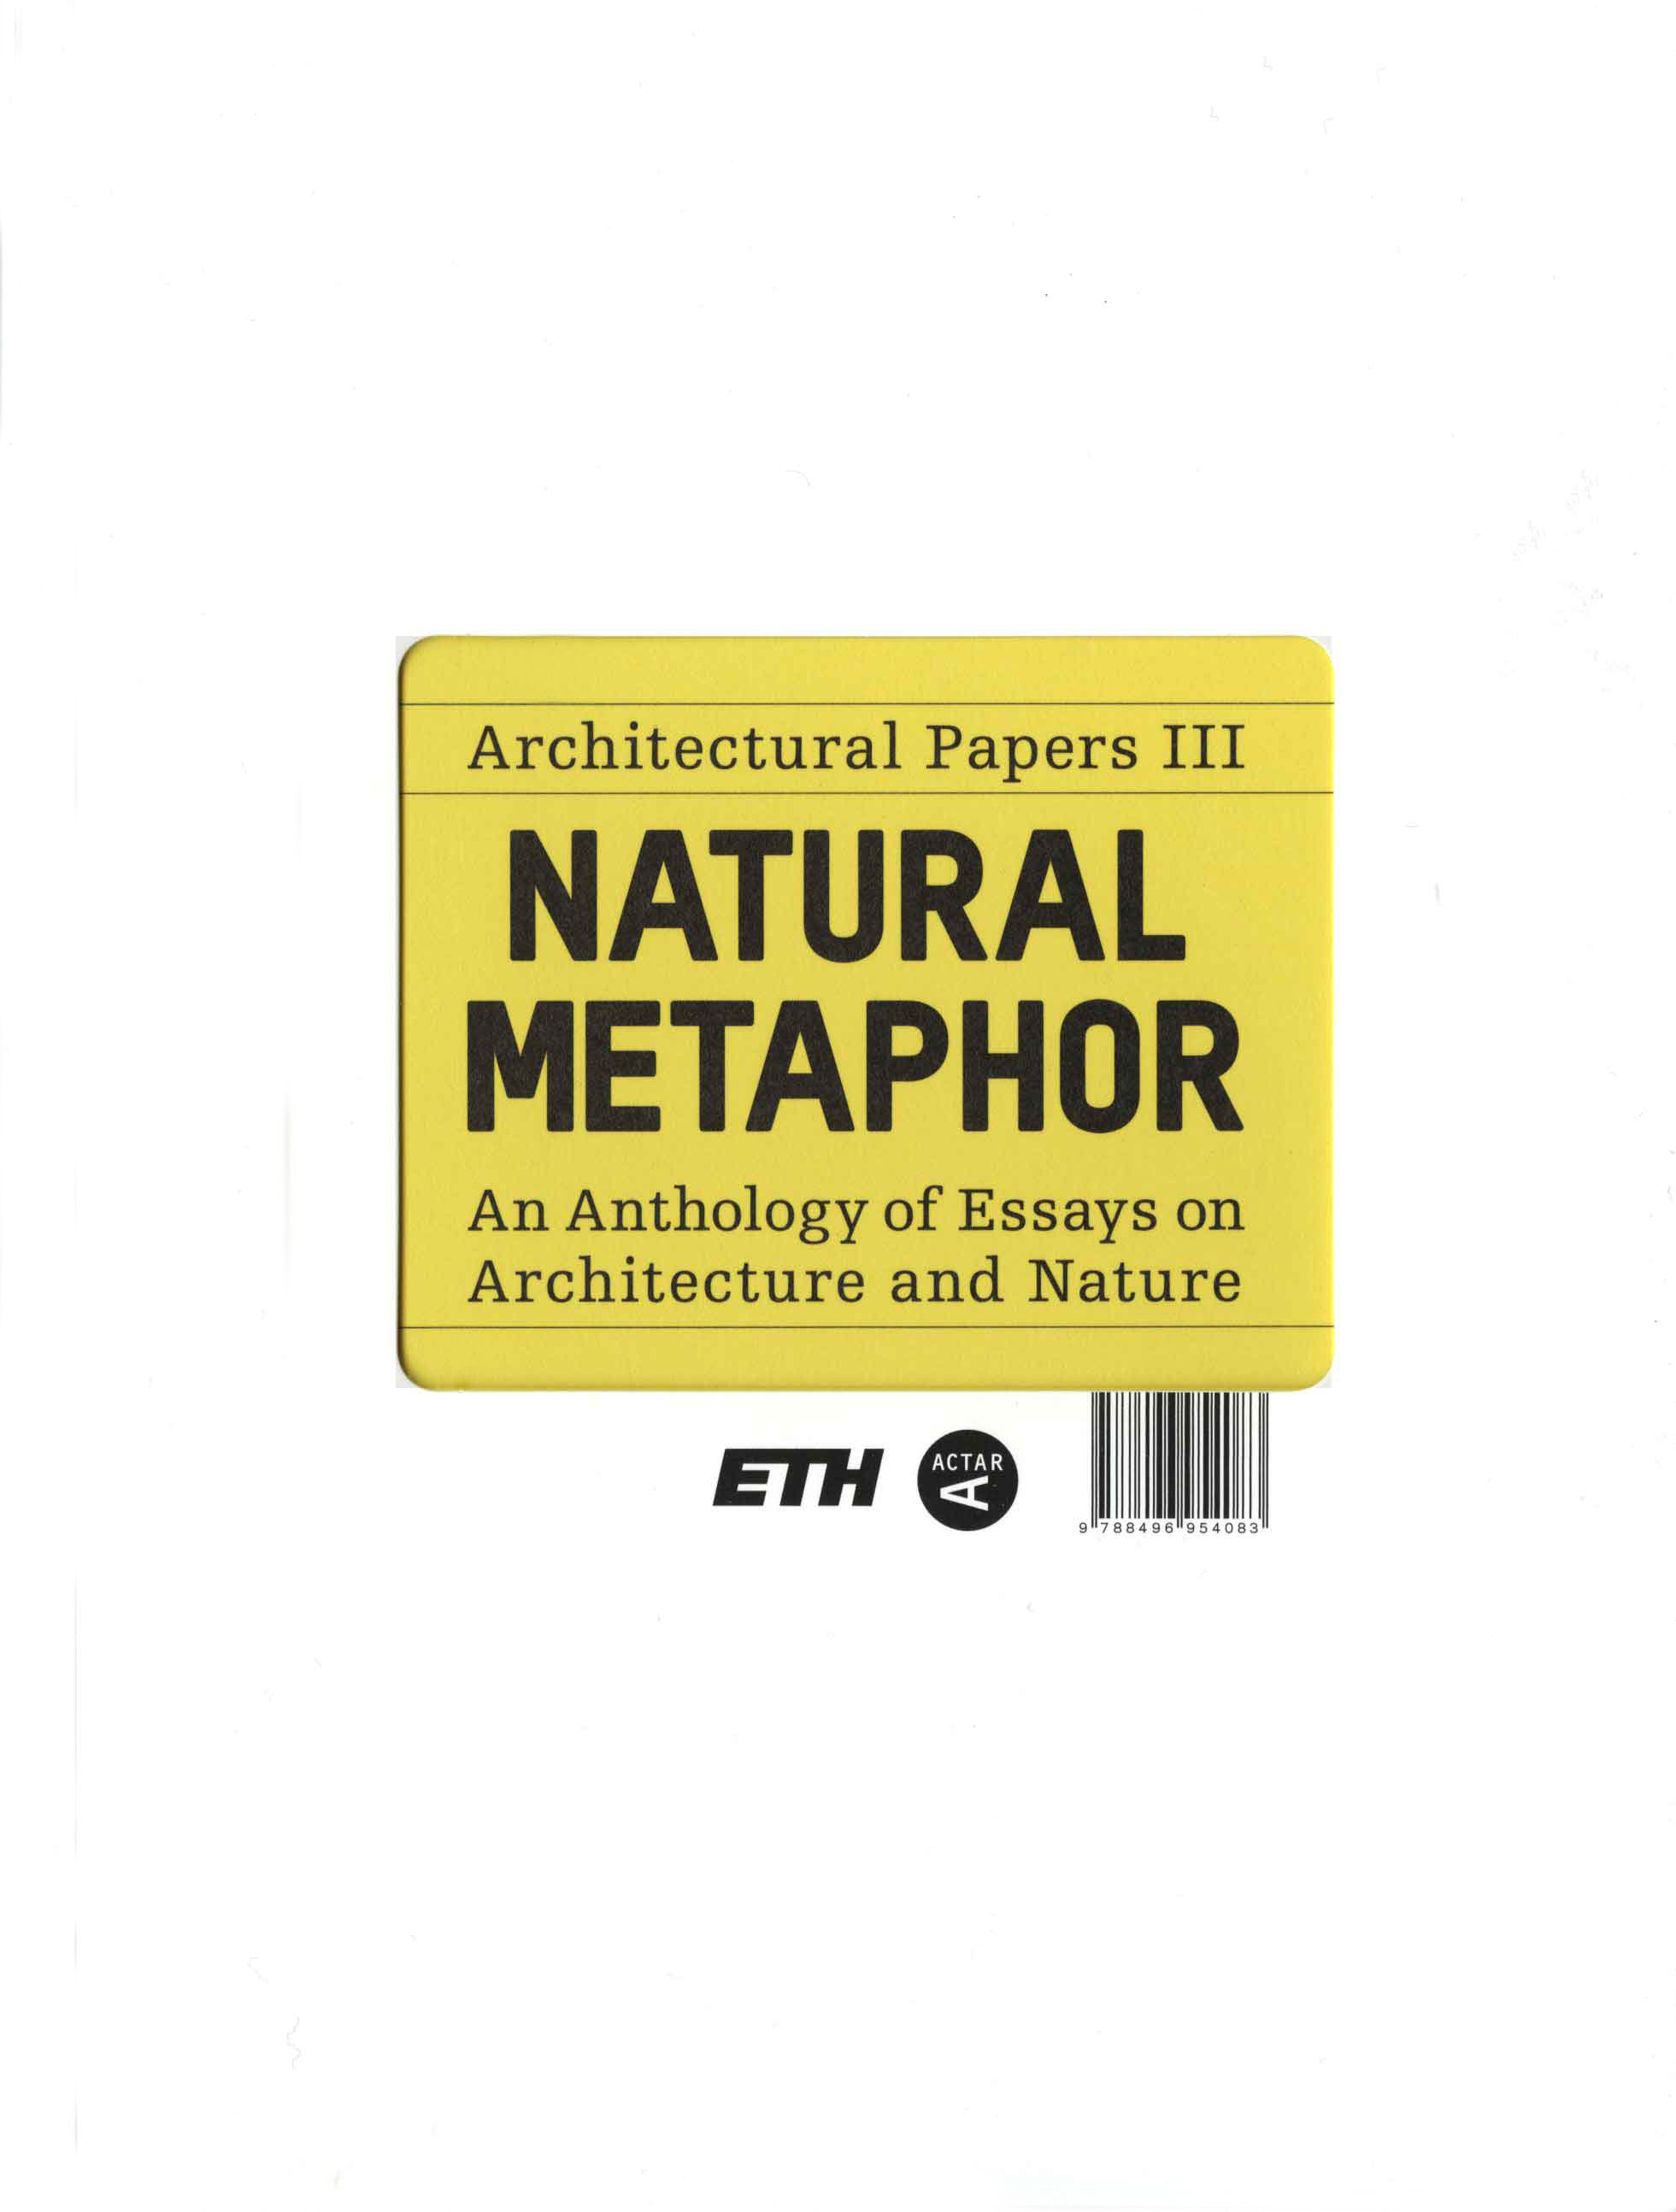 Natural Metaphor. Architectural Papers III